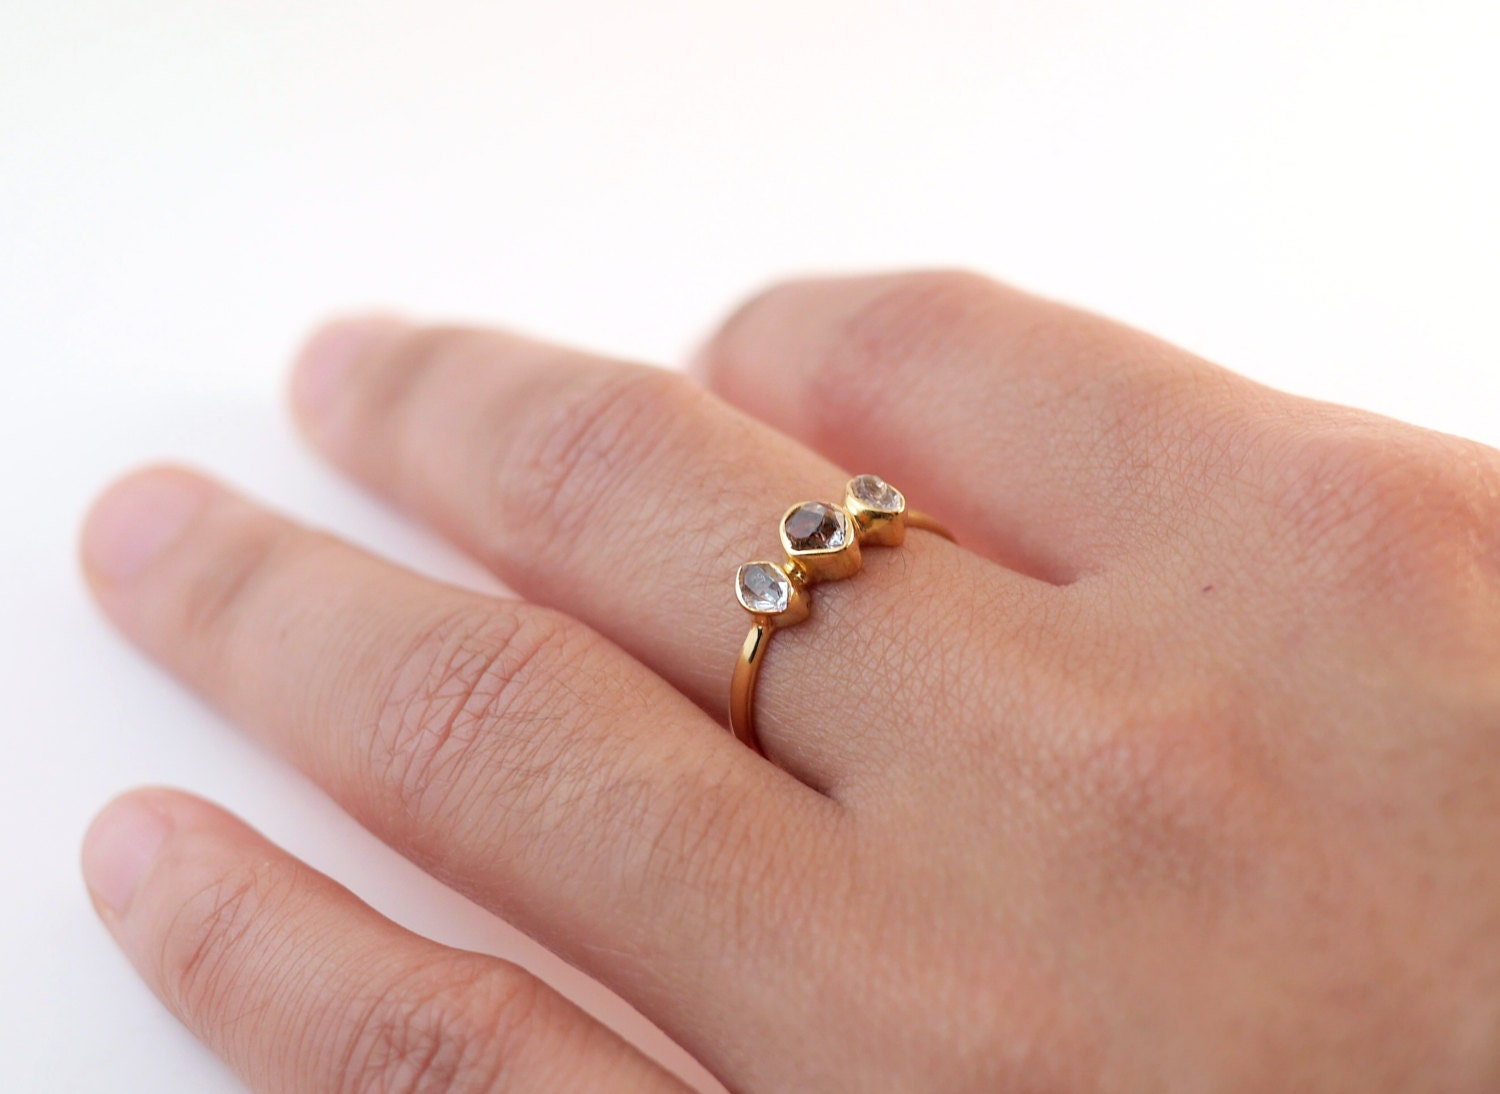 herkimer diamond ring gold dainty rings ring for. Black Bedroom Furniture Sets. Home Design Ideas